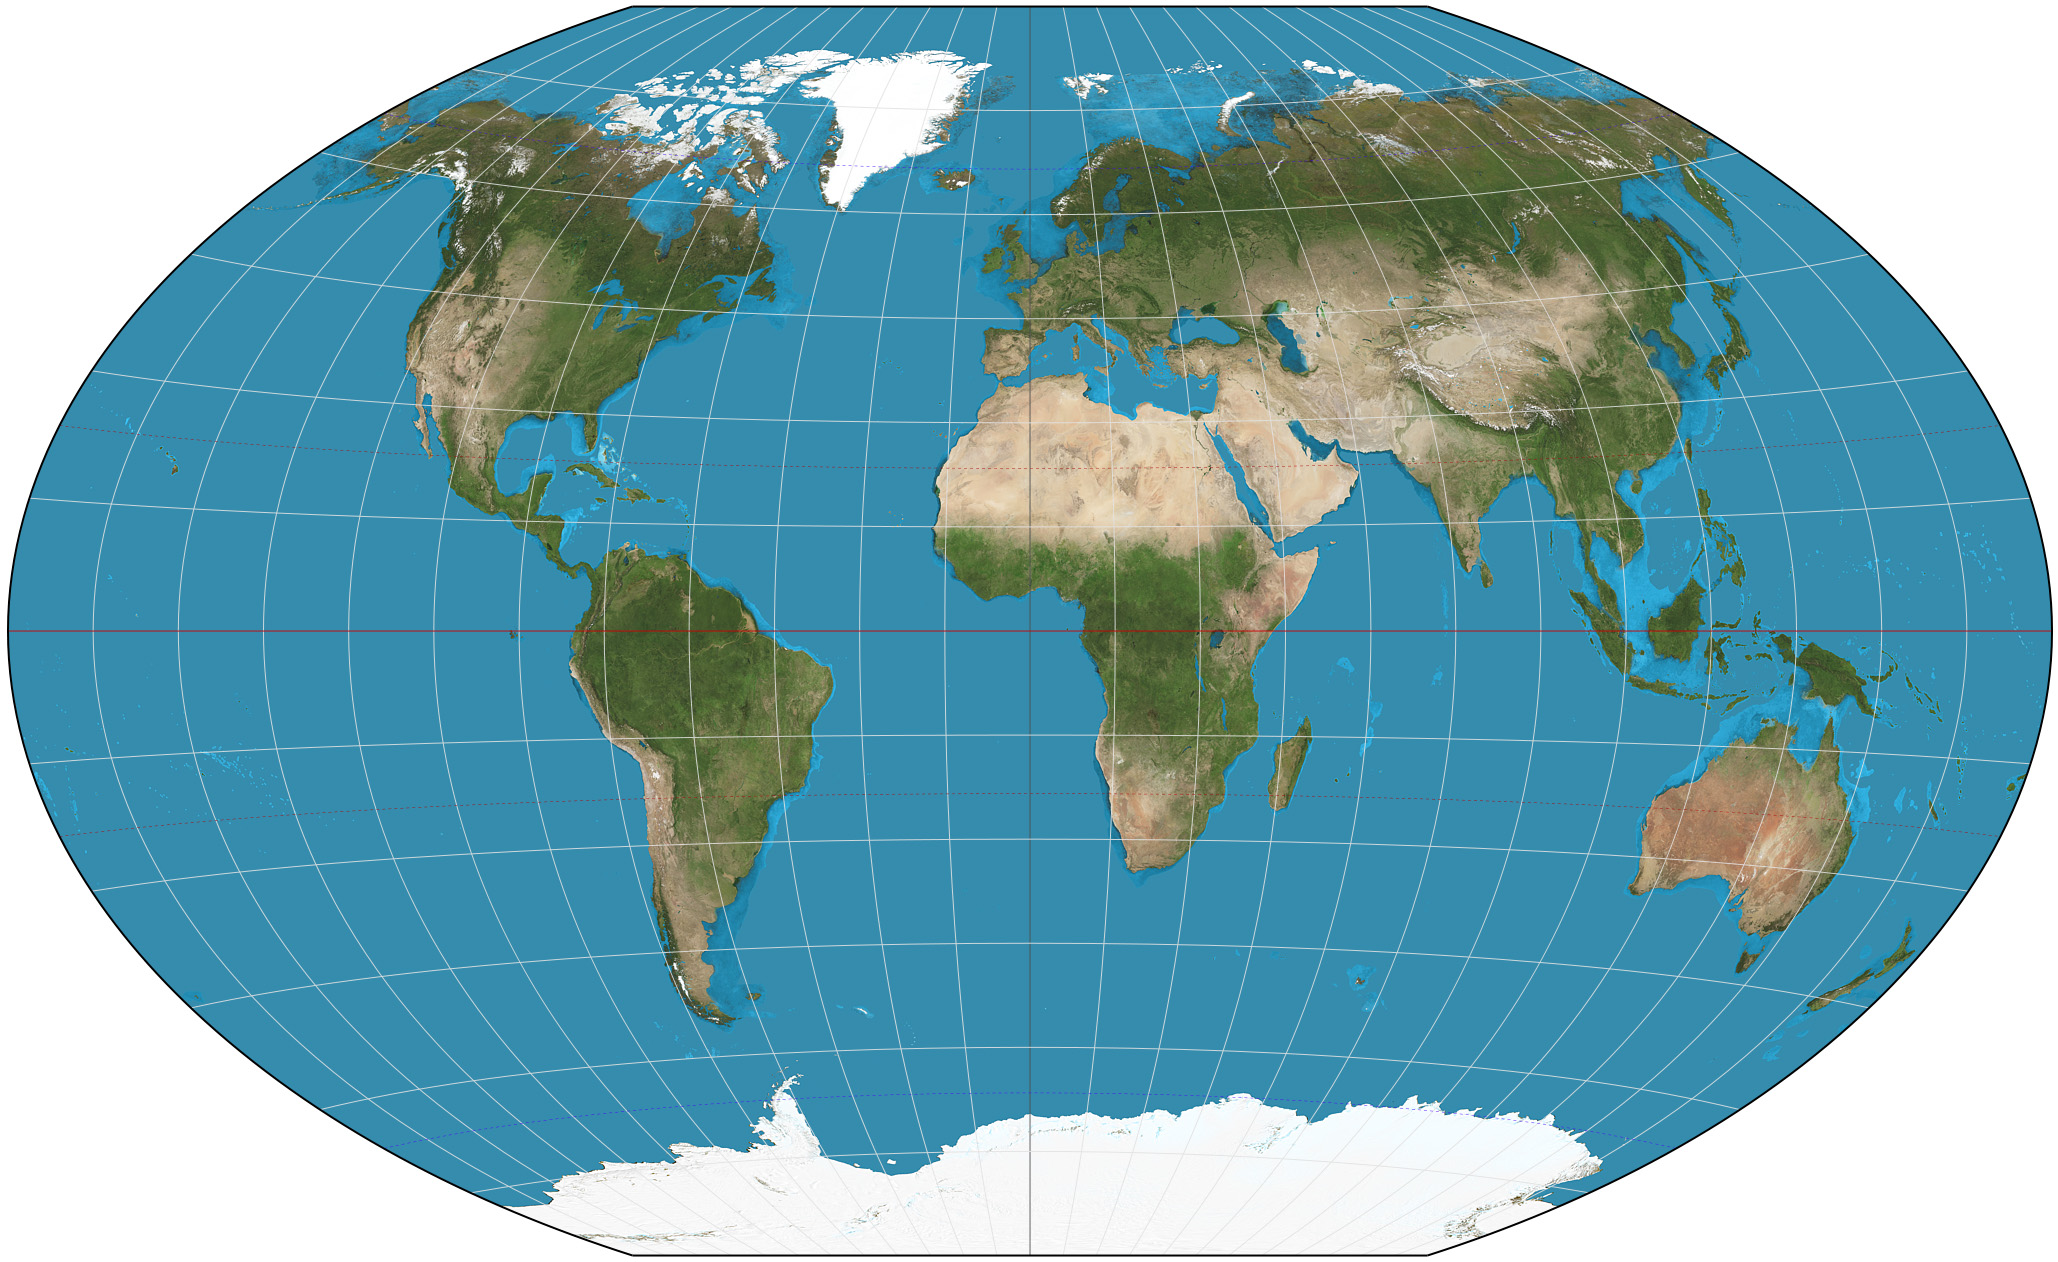 World map - Wikipedia on usa map, topographic map, regional map, canada map, google map, mappa mundi, antarctica map, africa map, china map, asia map, european map, brazil map, thematic map, costa rica map, korea map, united kingdom map, india map, globe map, middle east map, australia map, europe map, travel map, world map,